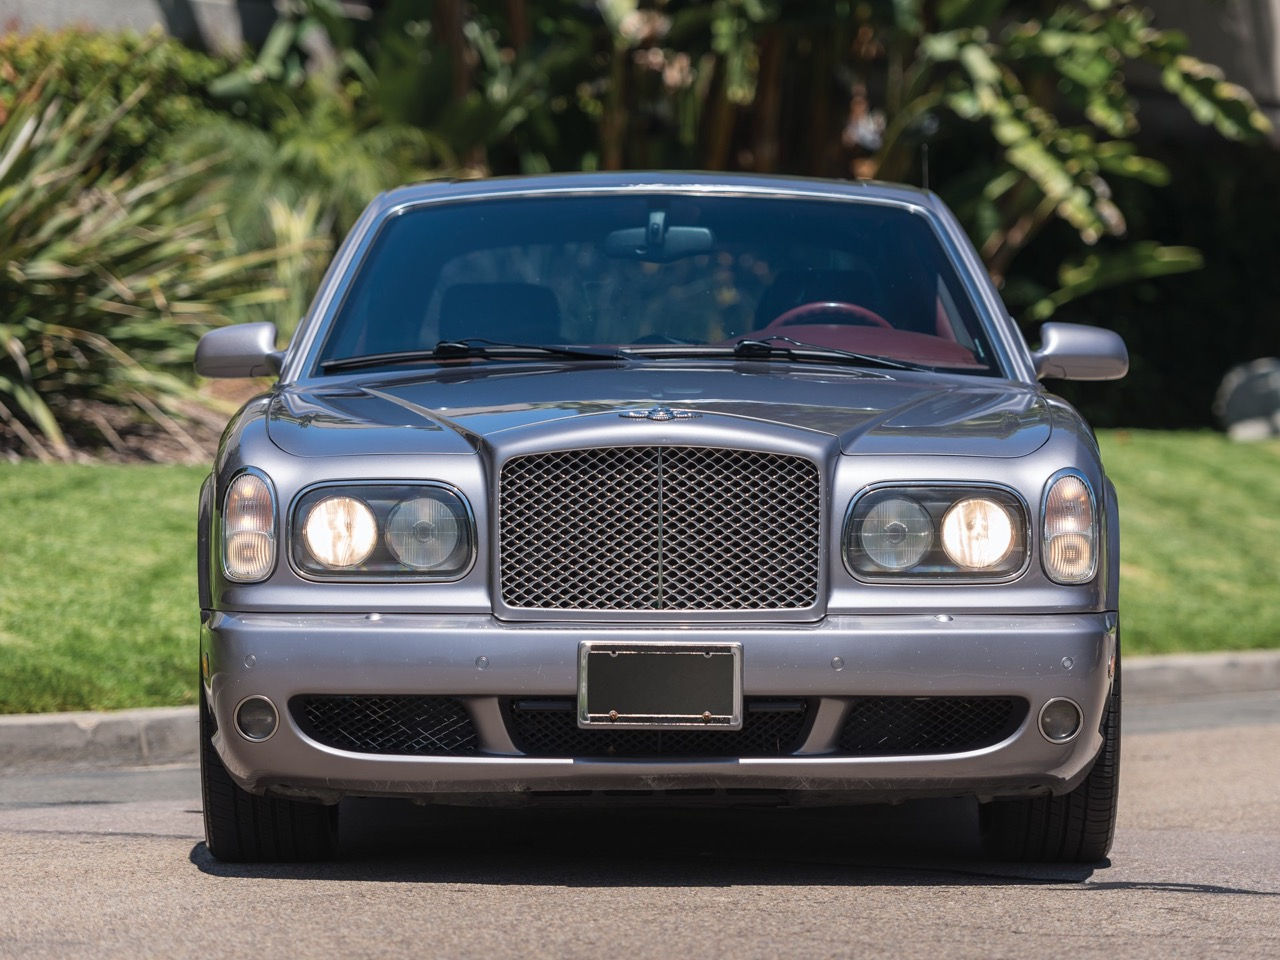 2003 Bentley Arnage T... Nickelle pour la retraite ! 4